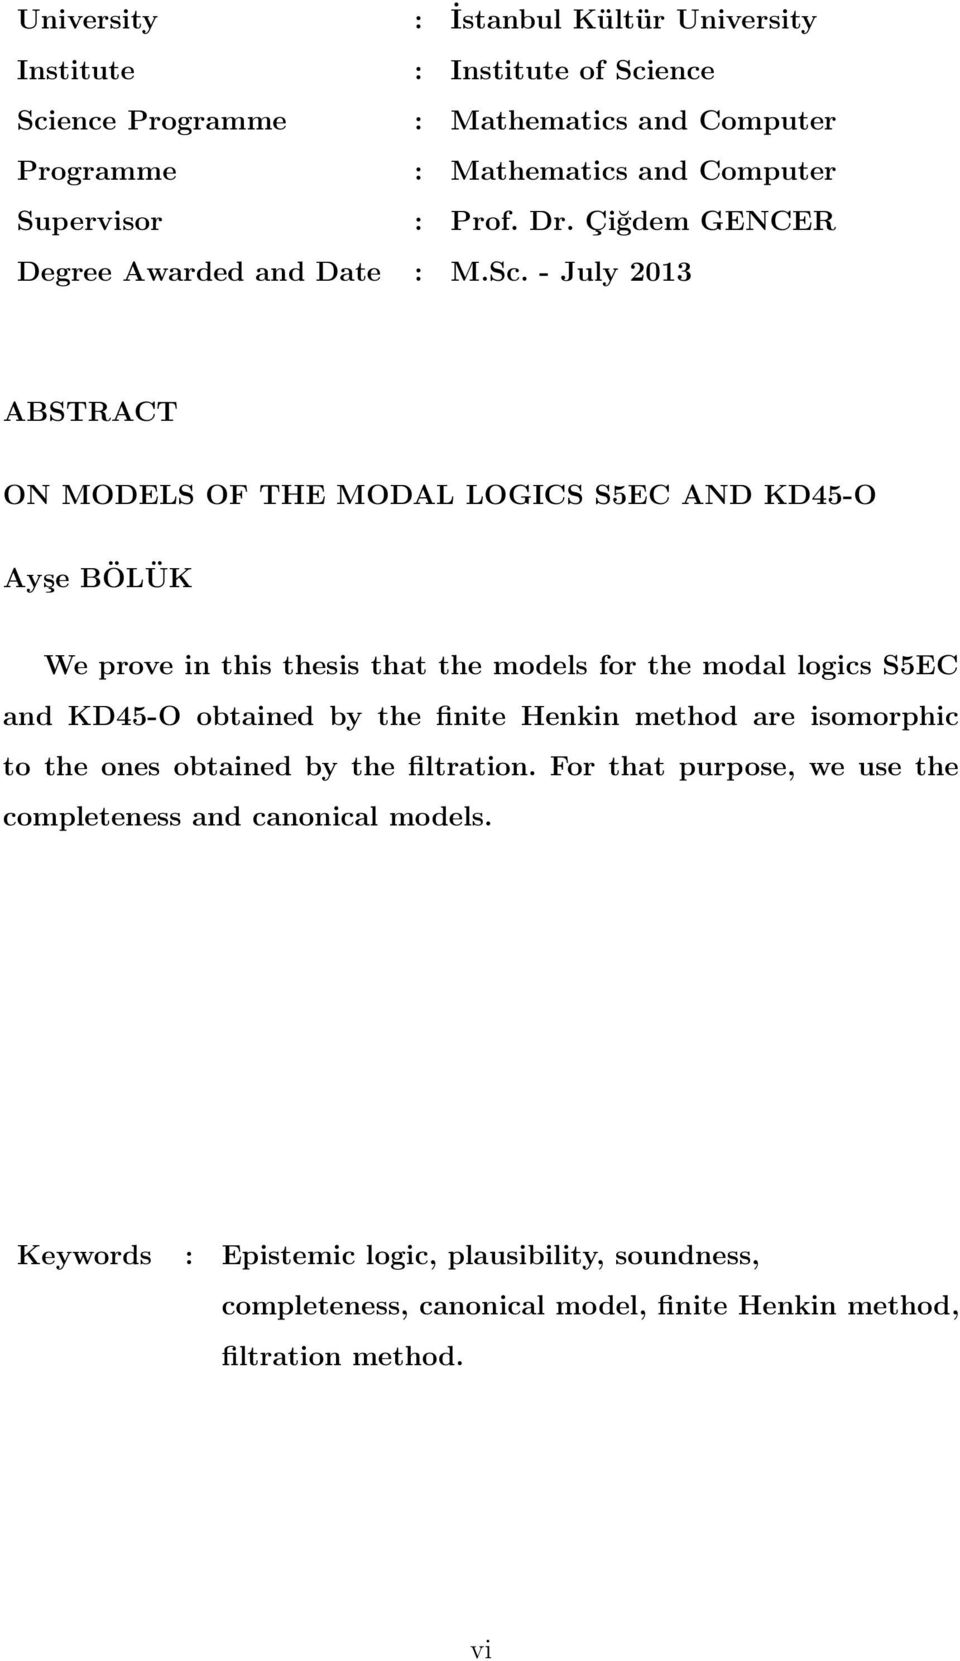 - July 2013 ABSTRACT ON MODELS OF THE MODAL LOGICS S5EC AND KD45-O Ayşe BÖLÜK We prove in this thesis that the models for the modal logics S5EC and KD45-O obtained